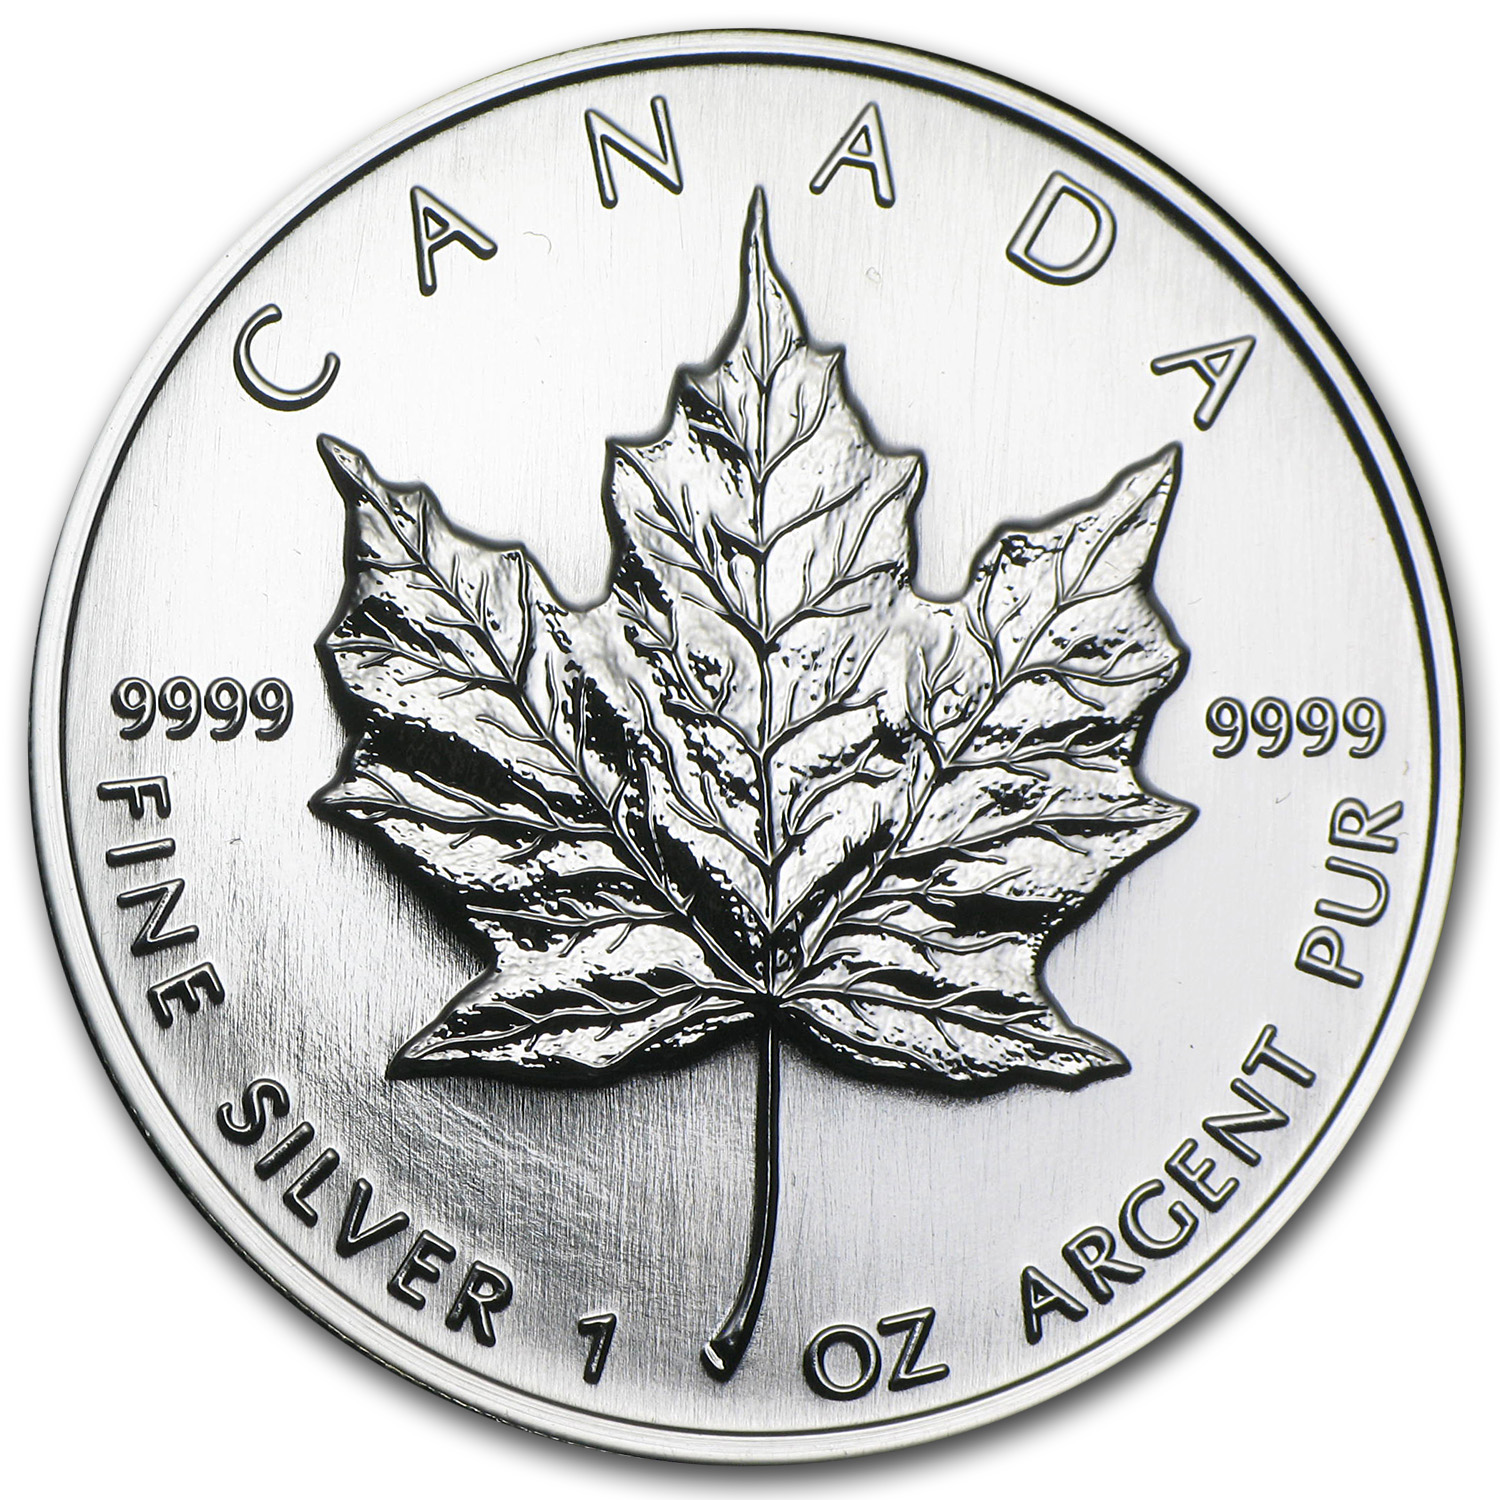 1998 Canada 1 oz Silver Maple Leaf BU